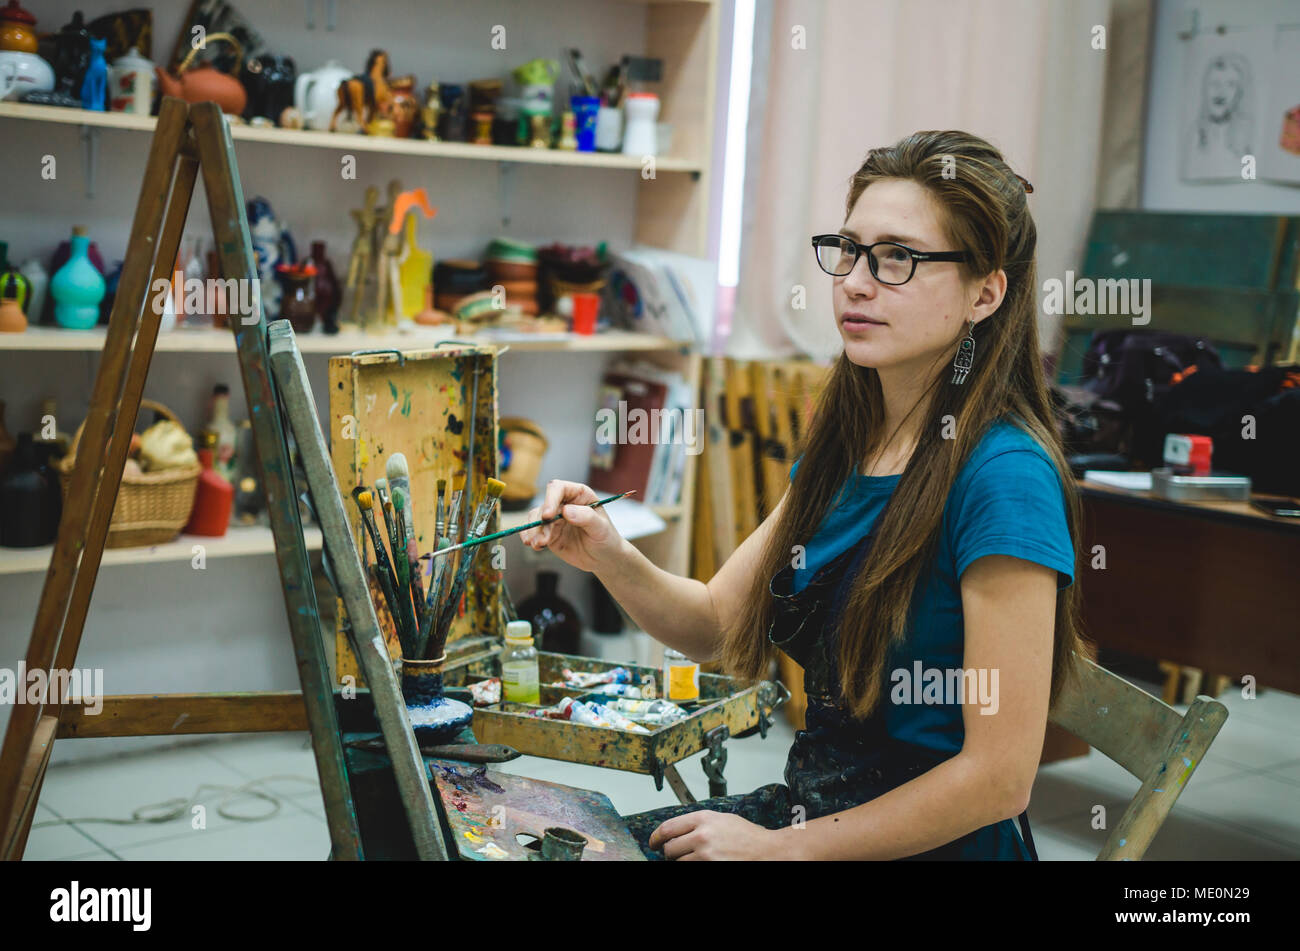 Pretty girl artist paints on canvas in art studio - Stock Image